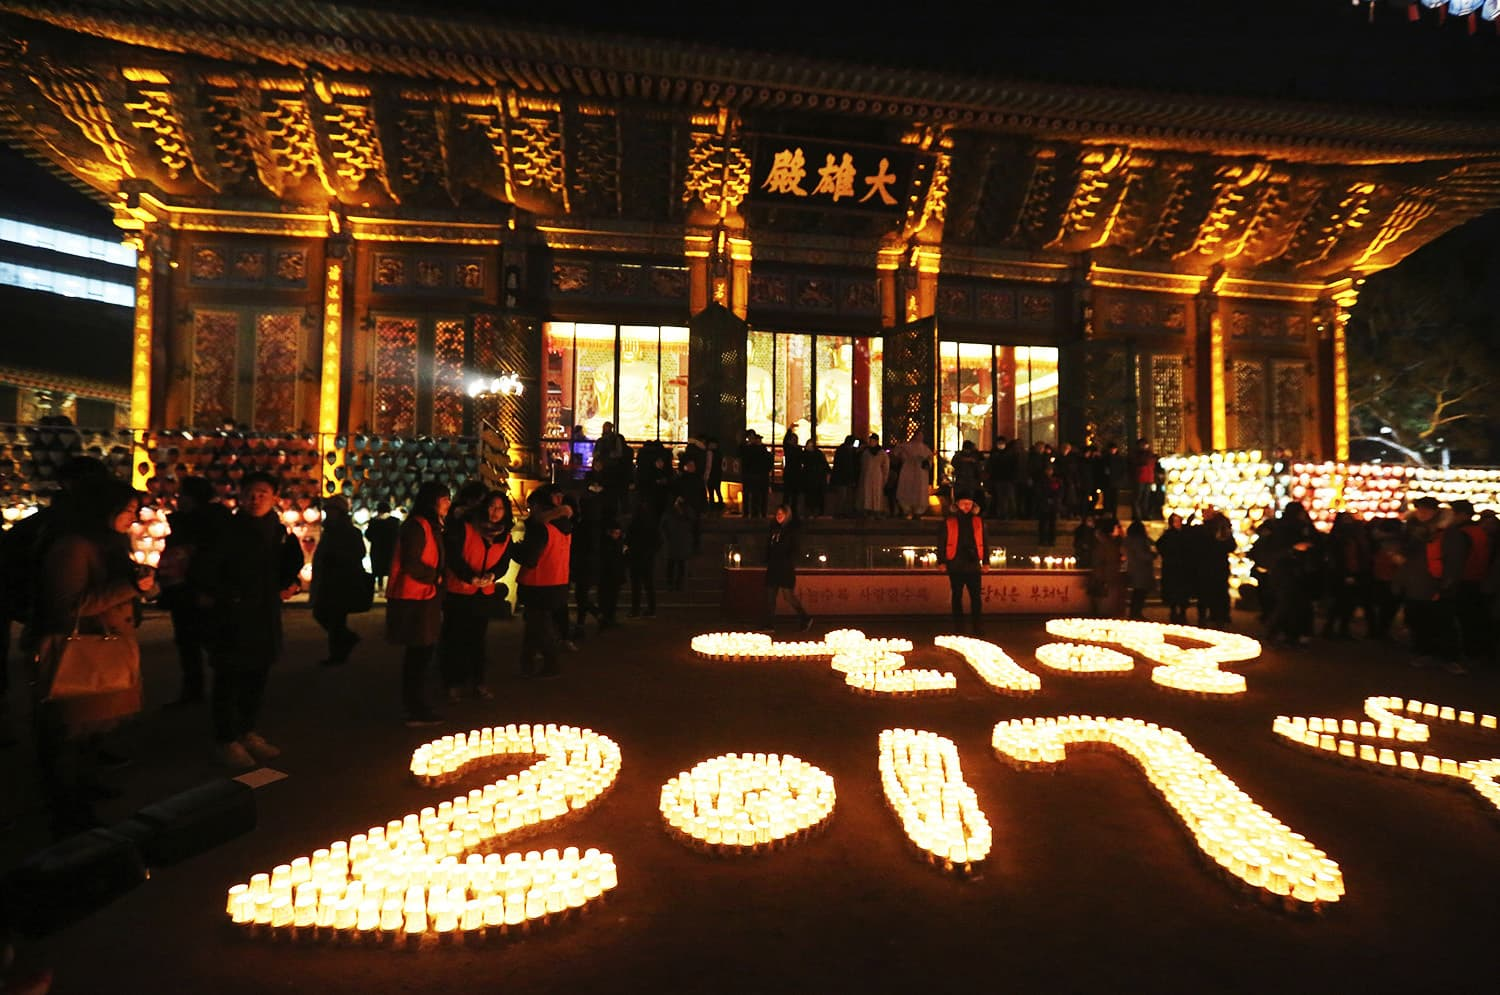 Buddhists light candles during New Year celebrations at Jogye Buddhist temple in Seoul, South Korea.—AP